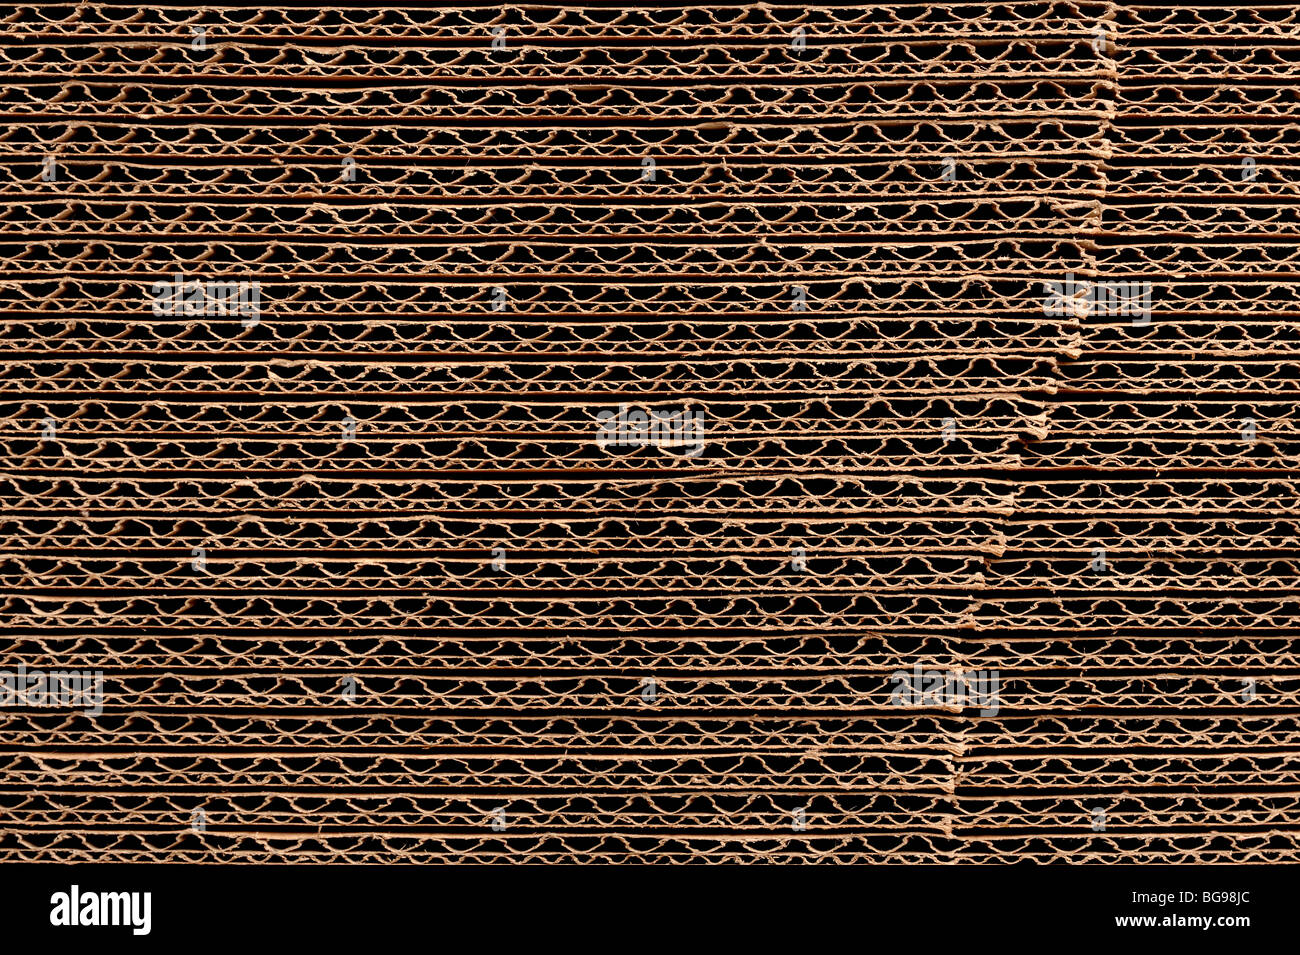 Stack of corrugated cardboard - Stock Image